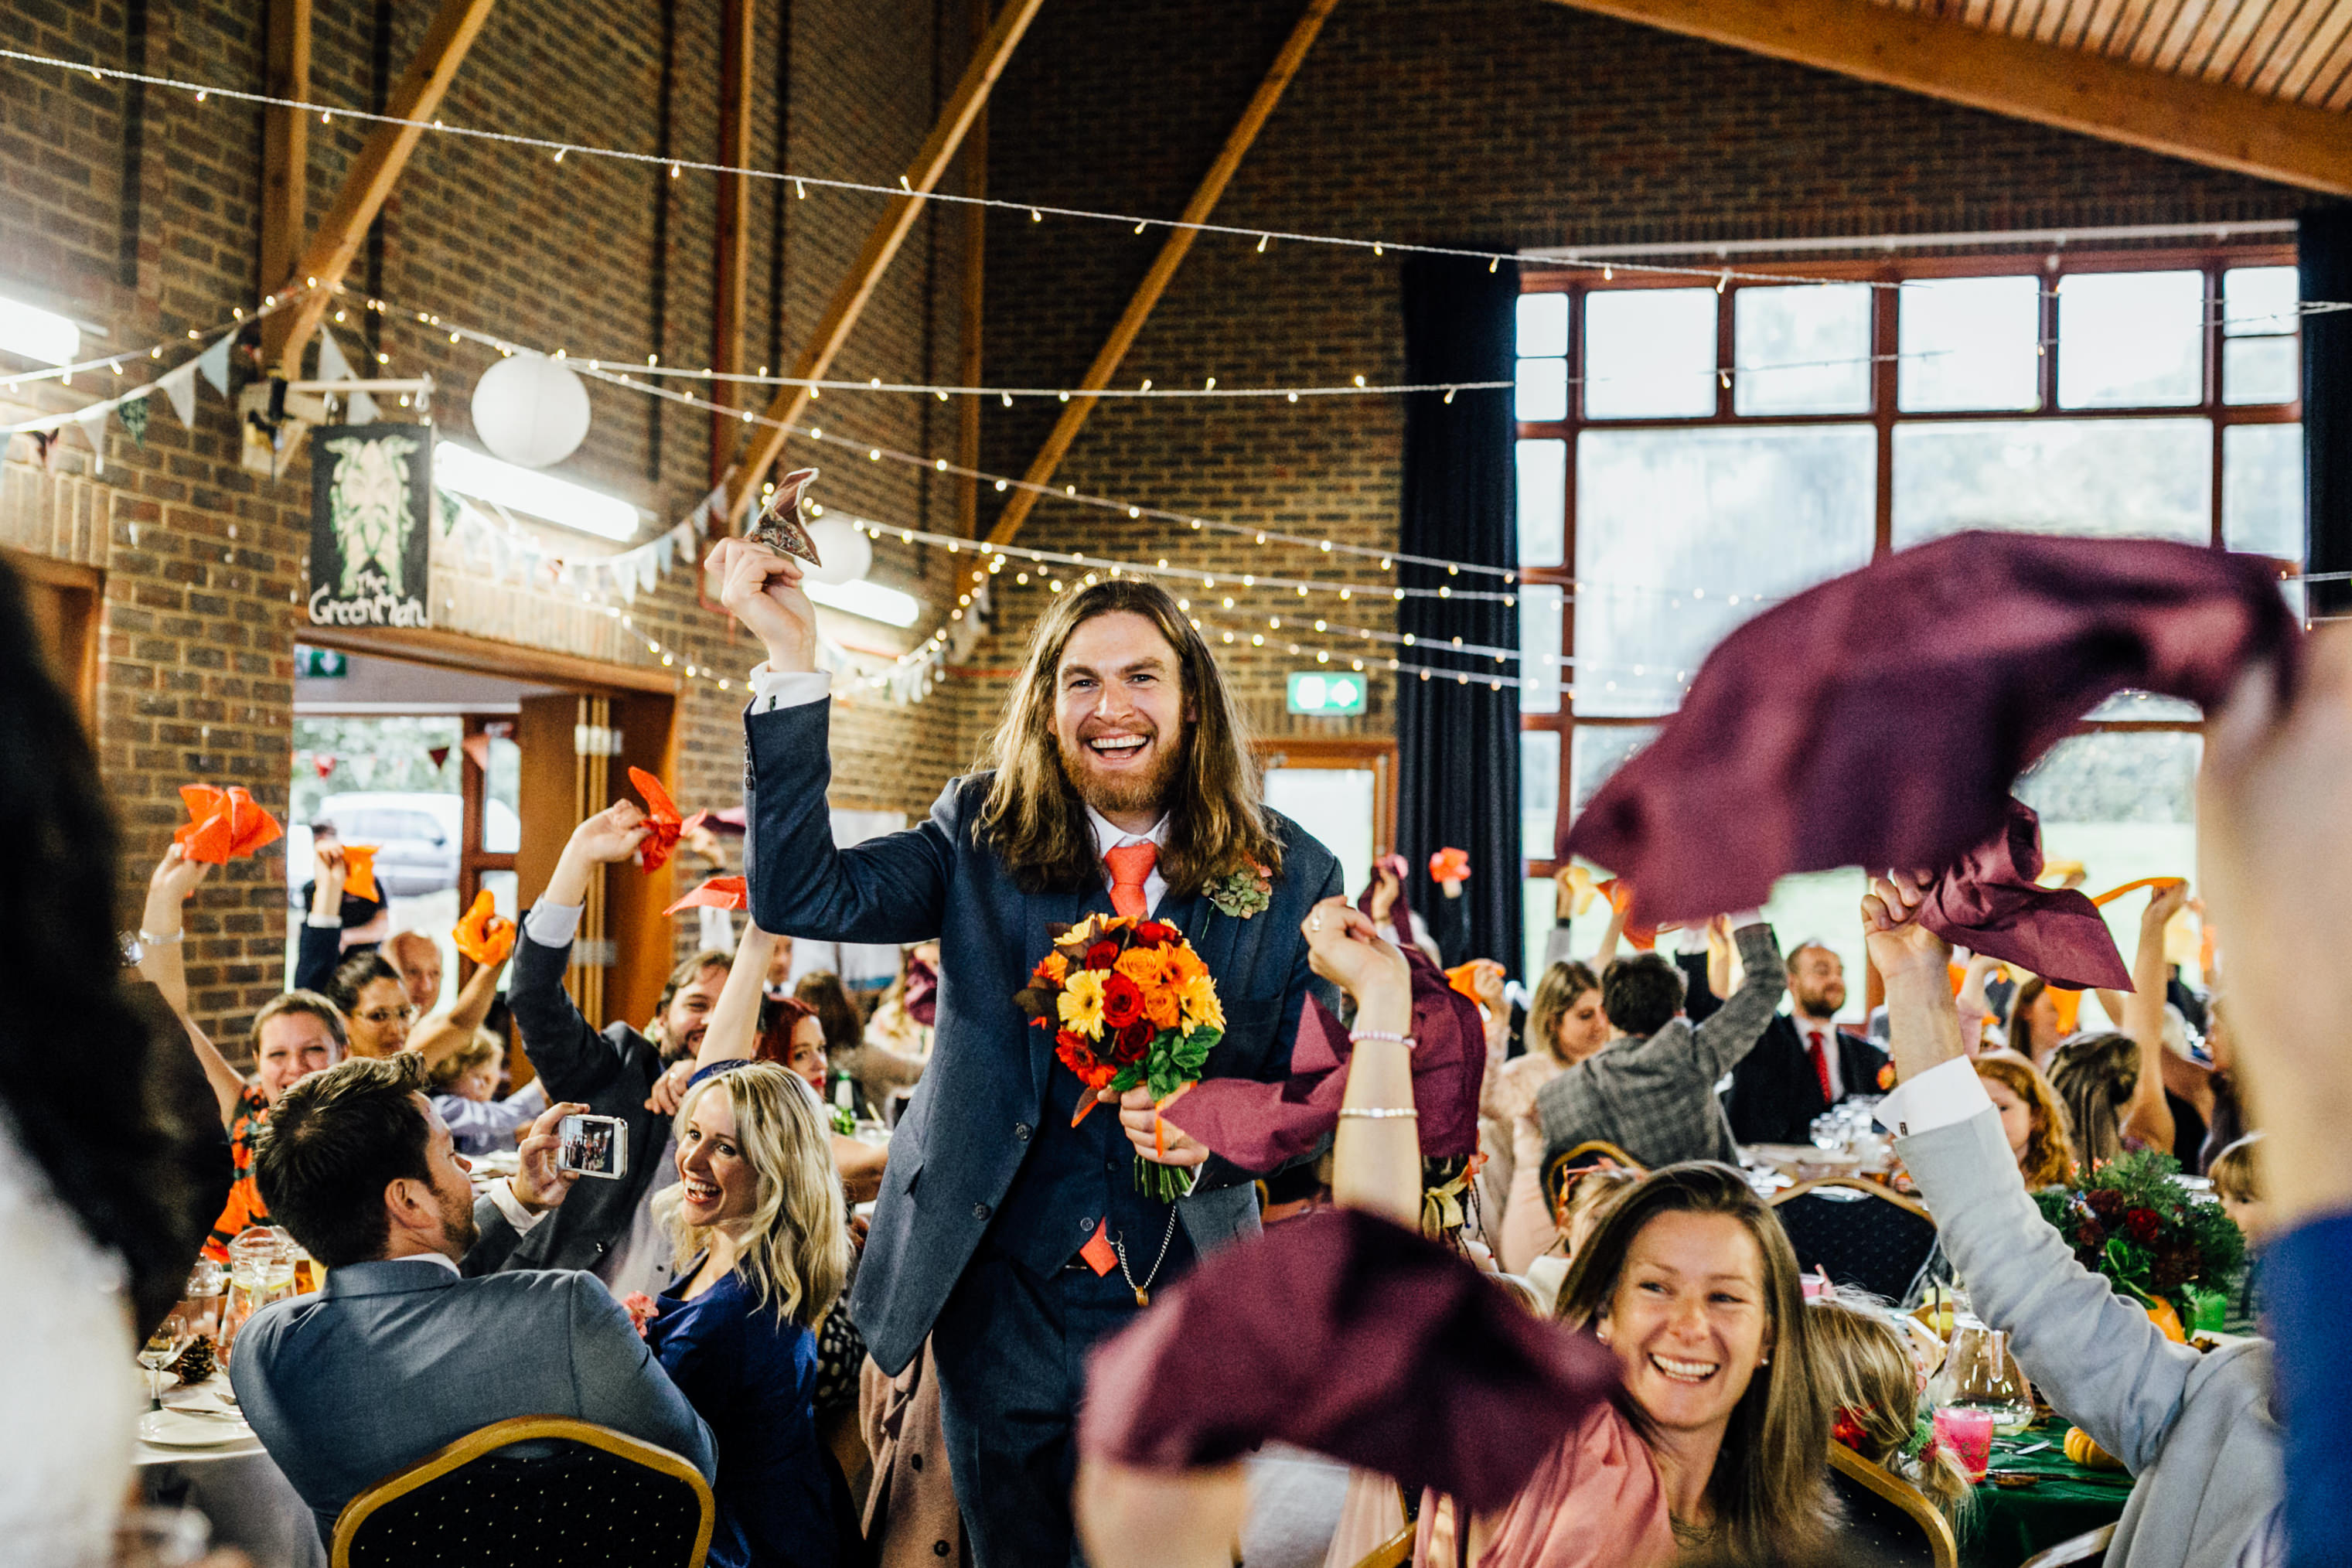 quirky fun autumn wedding in london wedding photographer